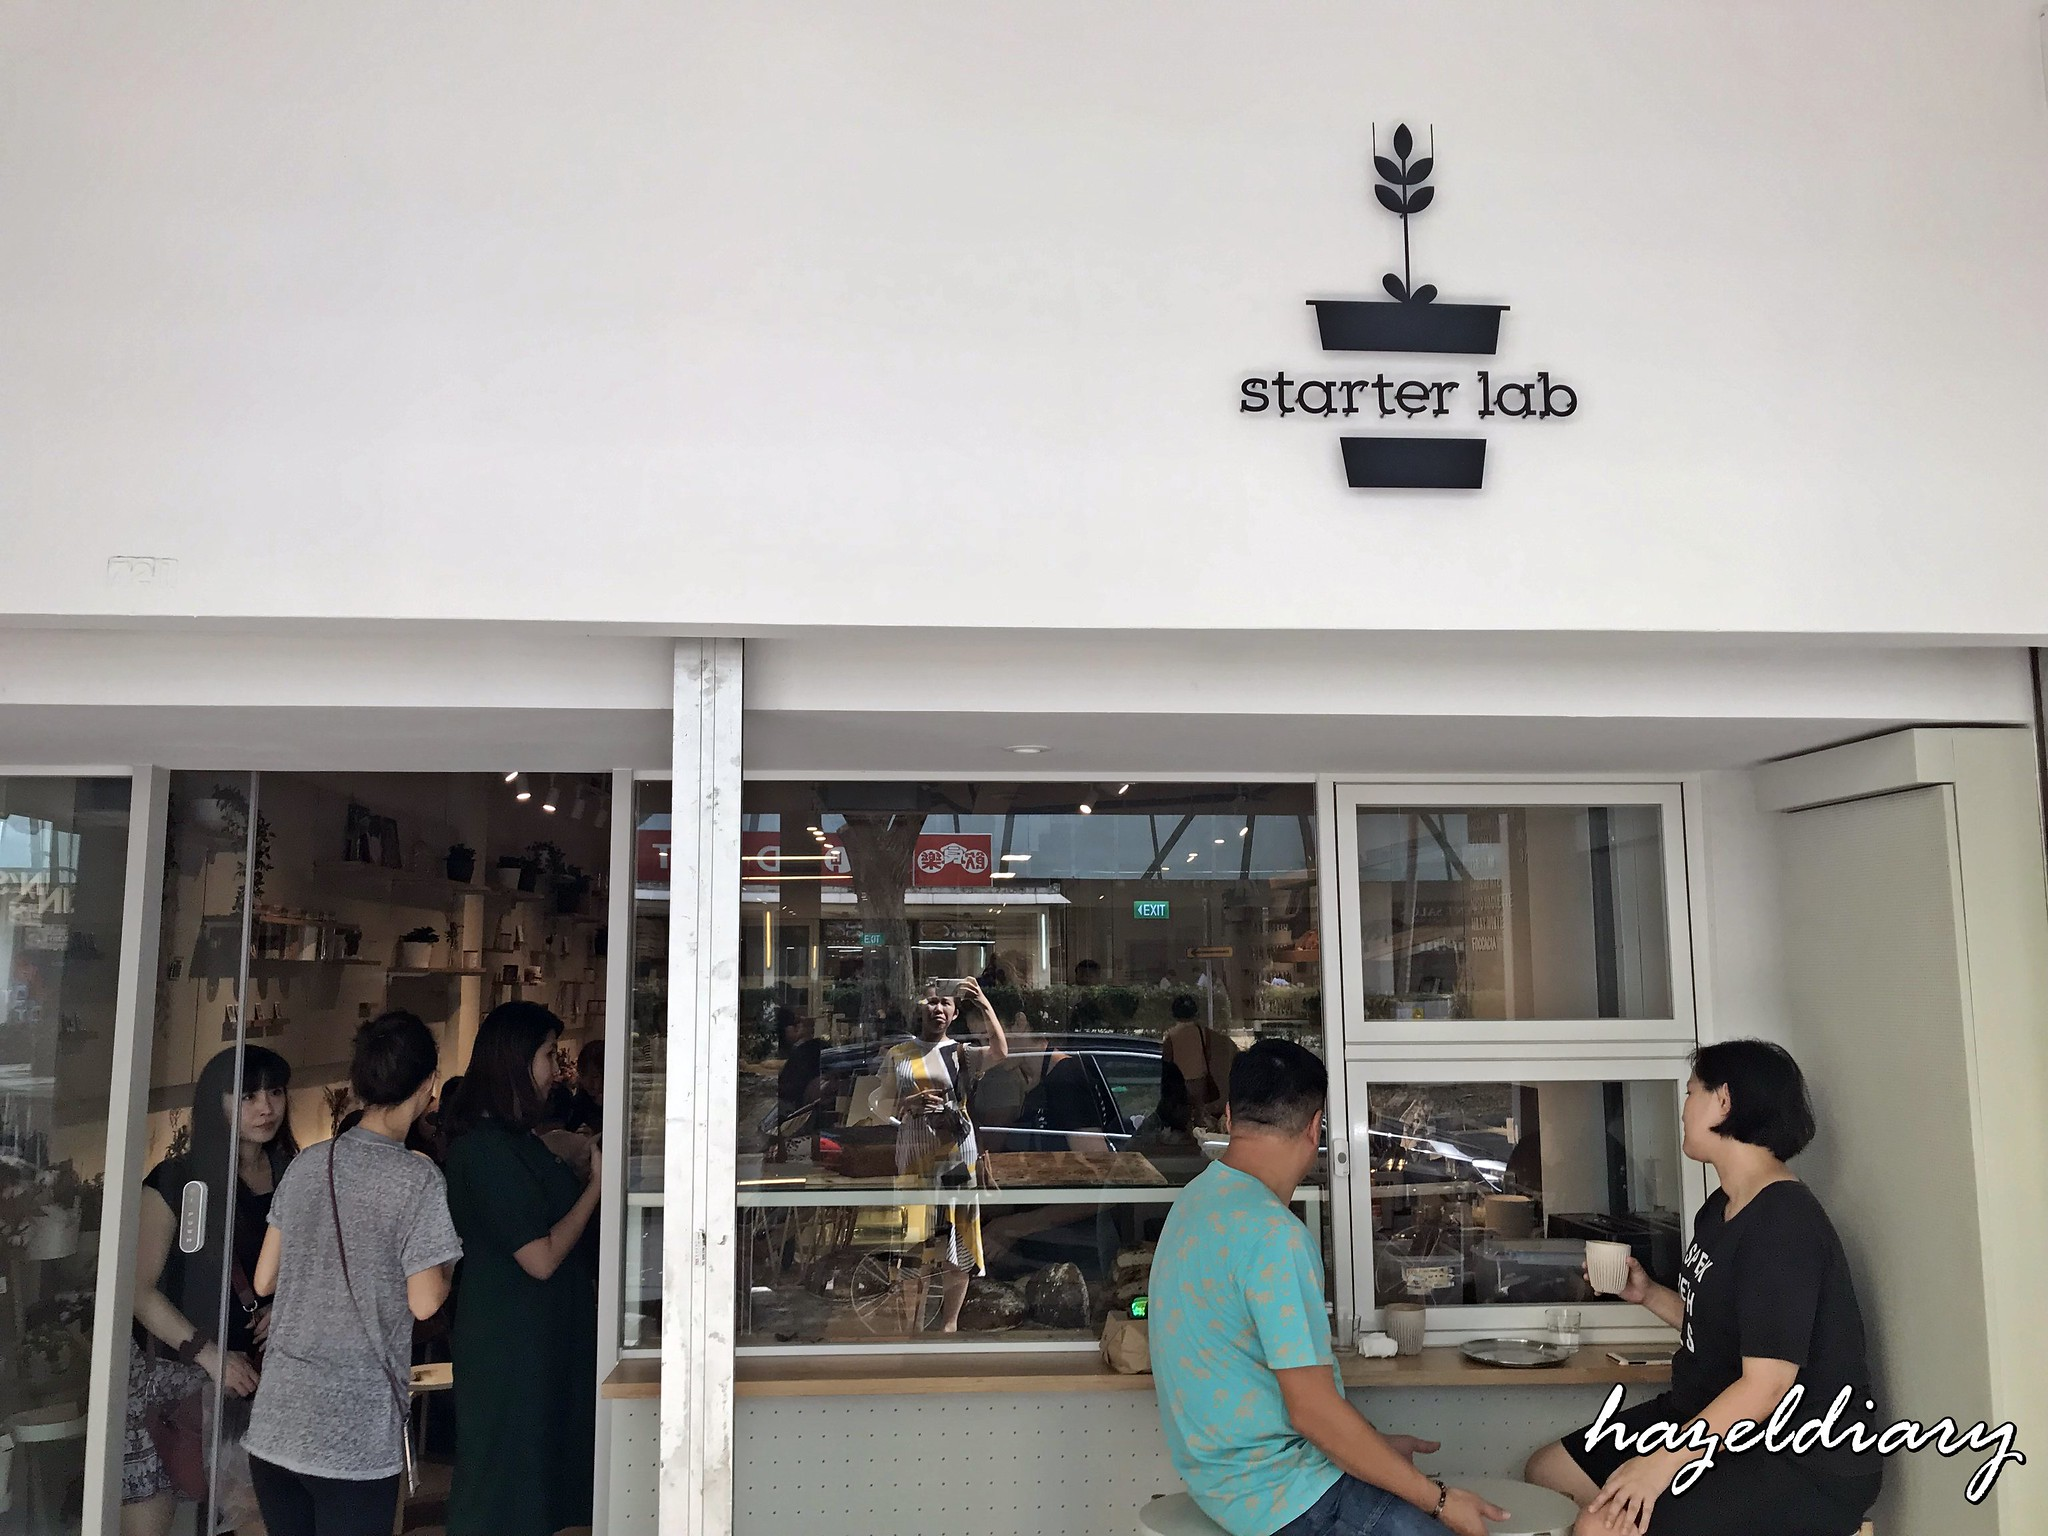 [SG EATS] Starter Lab Bakery At Havelock Road- Famous Bakery from Bali, Indonesia